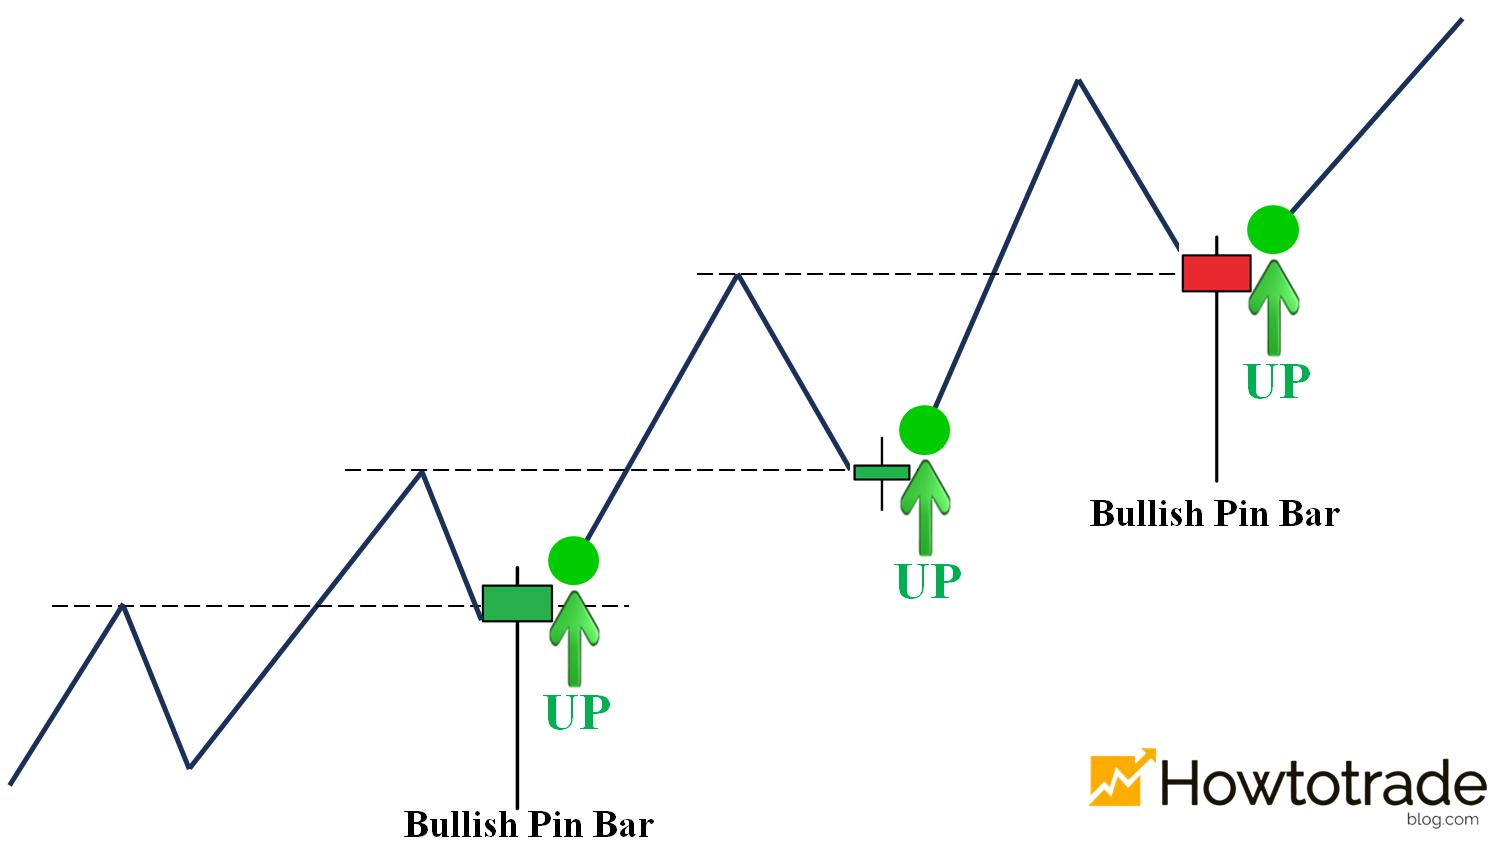 Reversal candlestick patterns in an uptrend